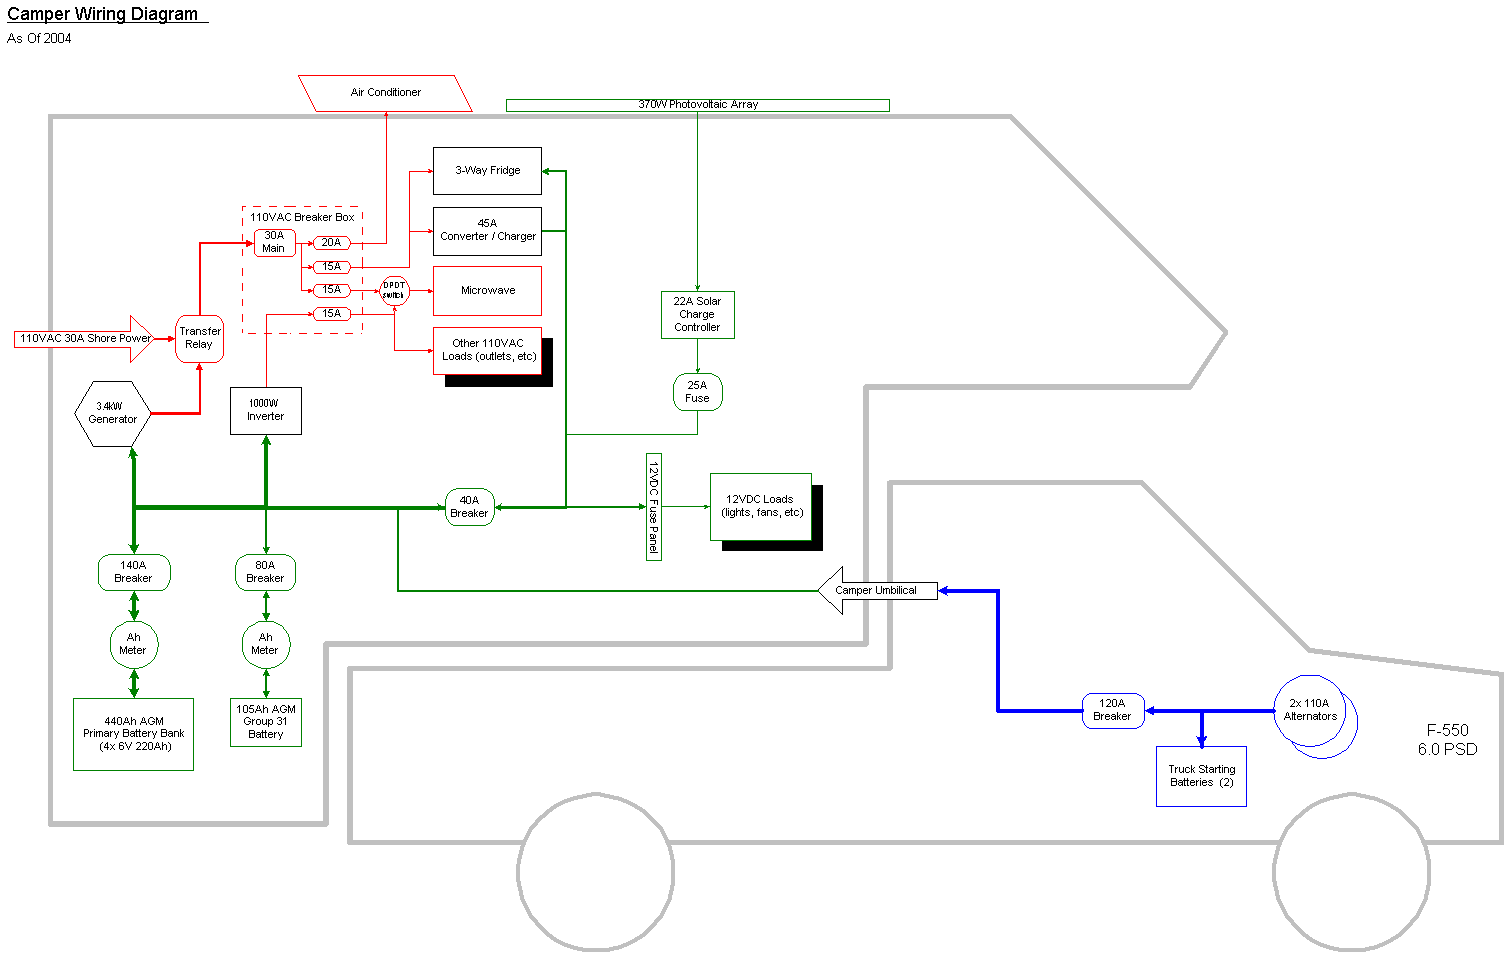 2004Diagram camper wiring diagram trailer wiring color code \u2022 buccaneersvsrams co  at aneh.co